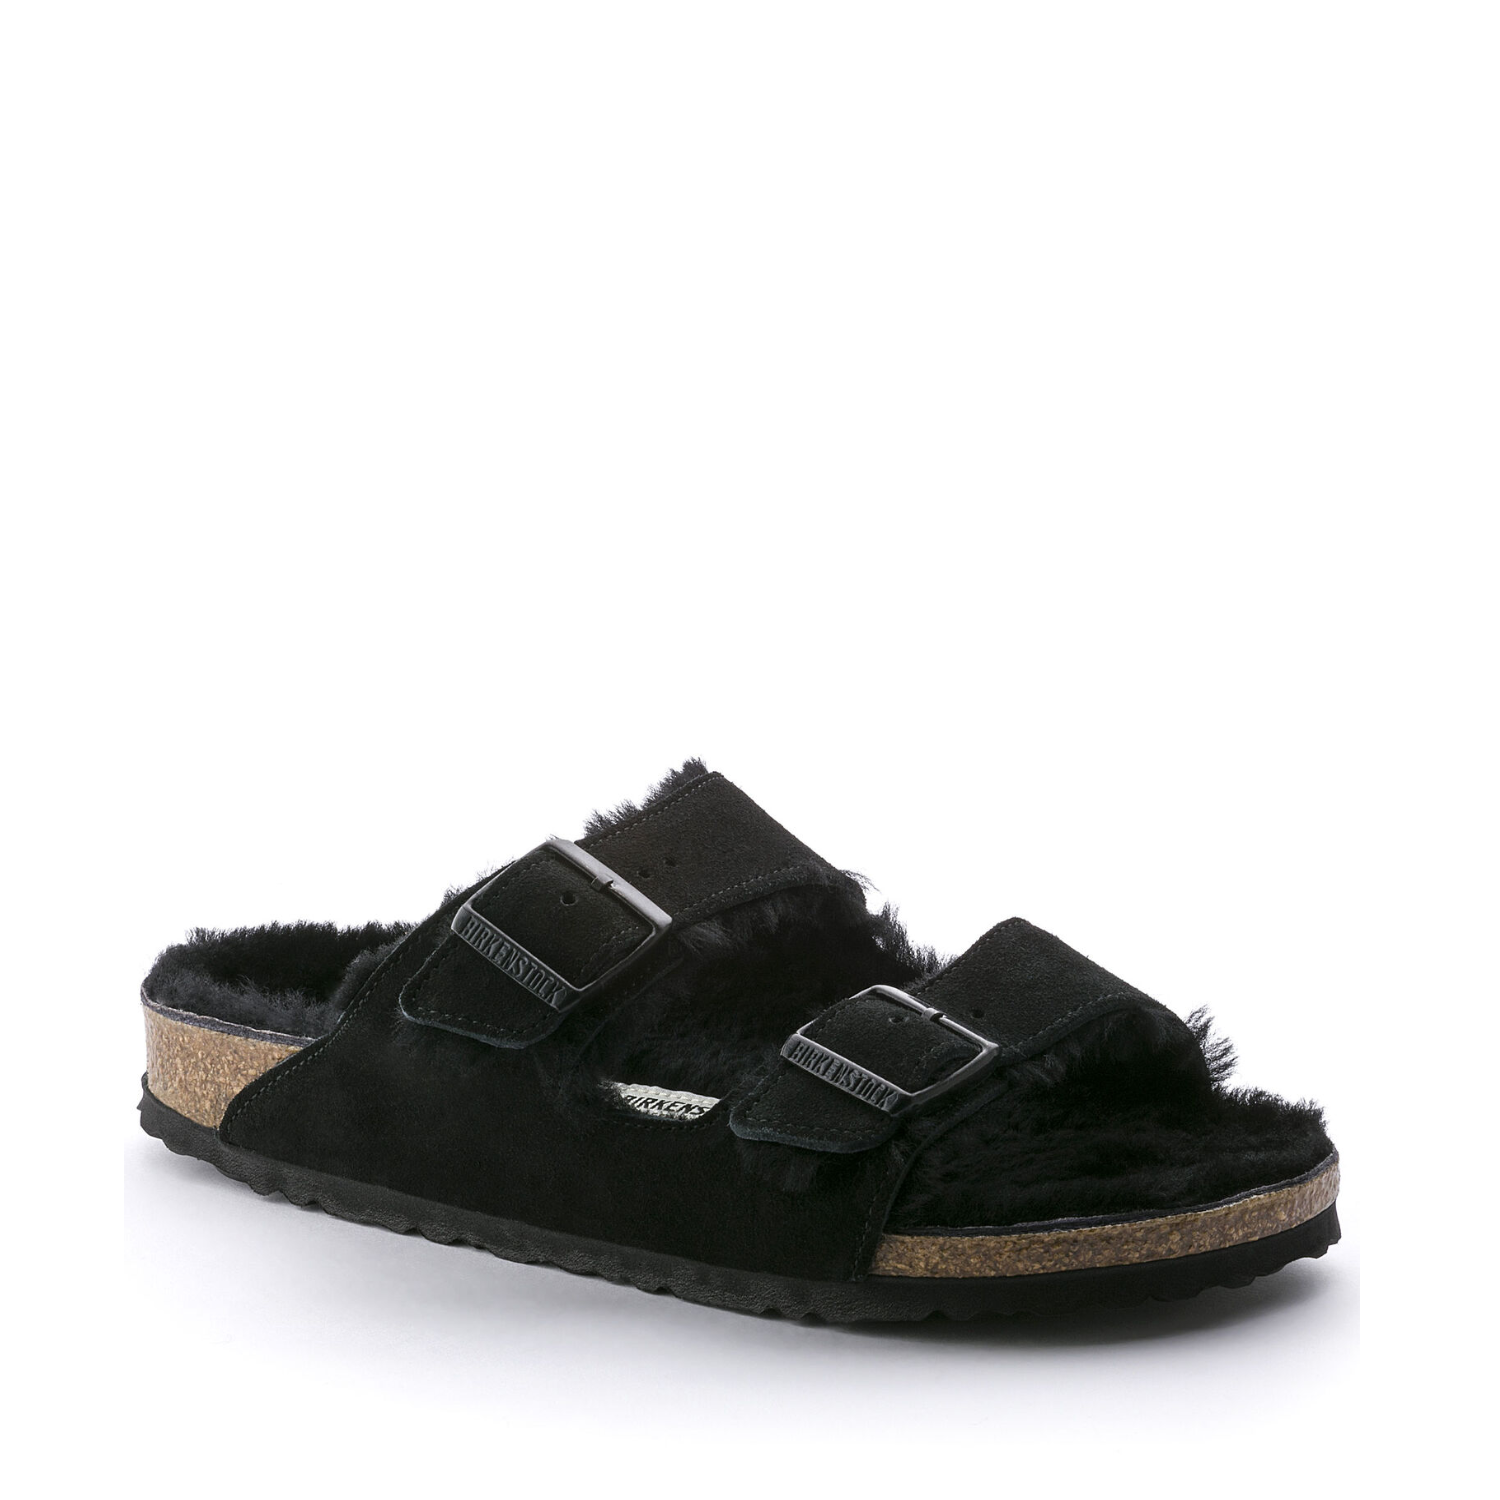 BIRK-ARIZONA SHEARLING-SUEDE LEATHER/FUR-BLACK